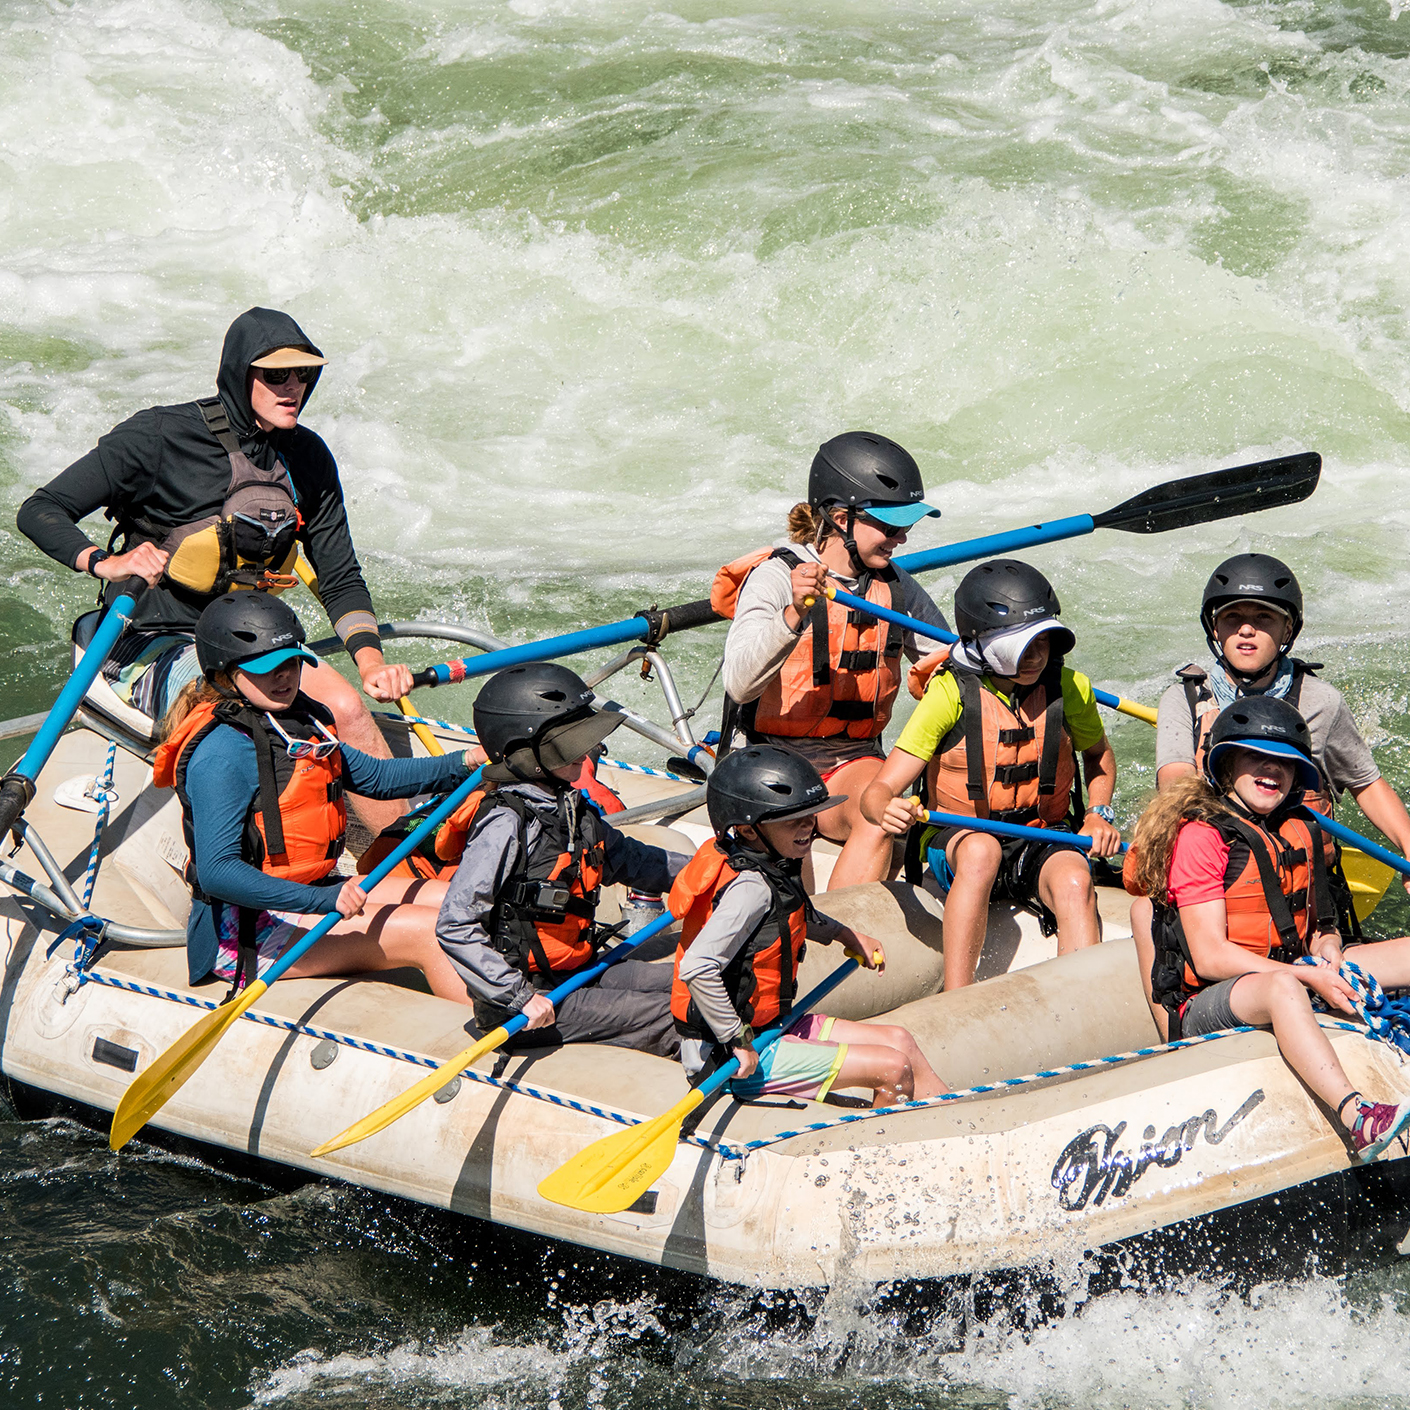 Whitewater rafting on the Pacific Northwest Explorer trip